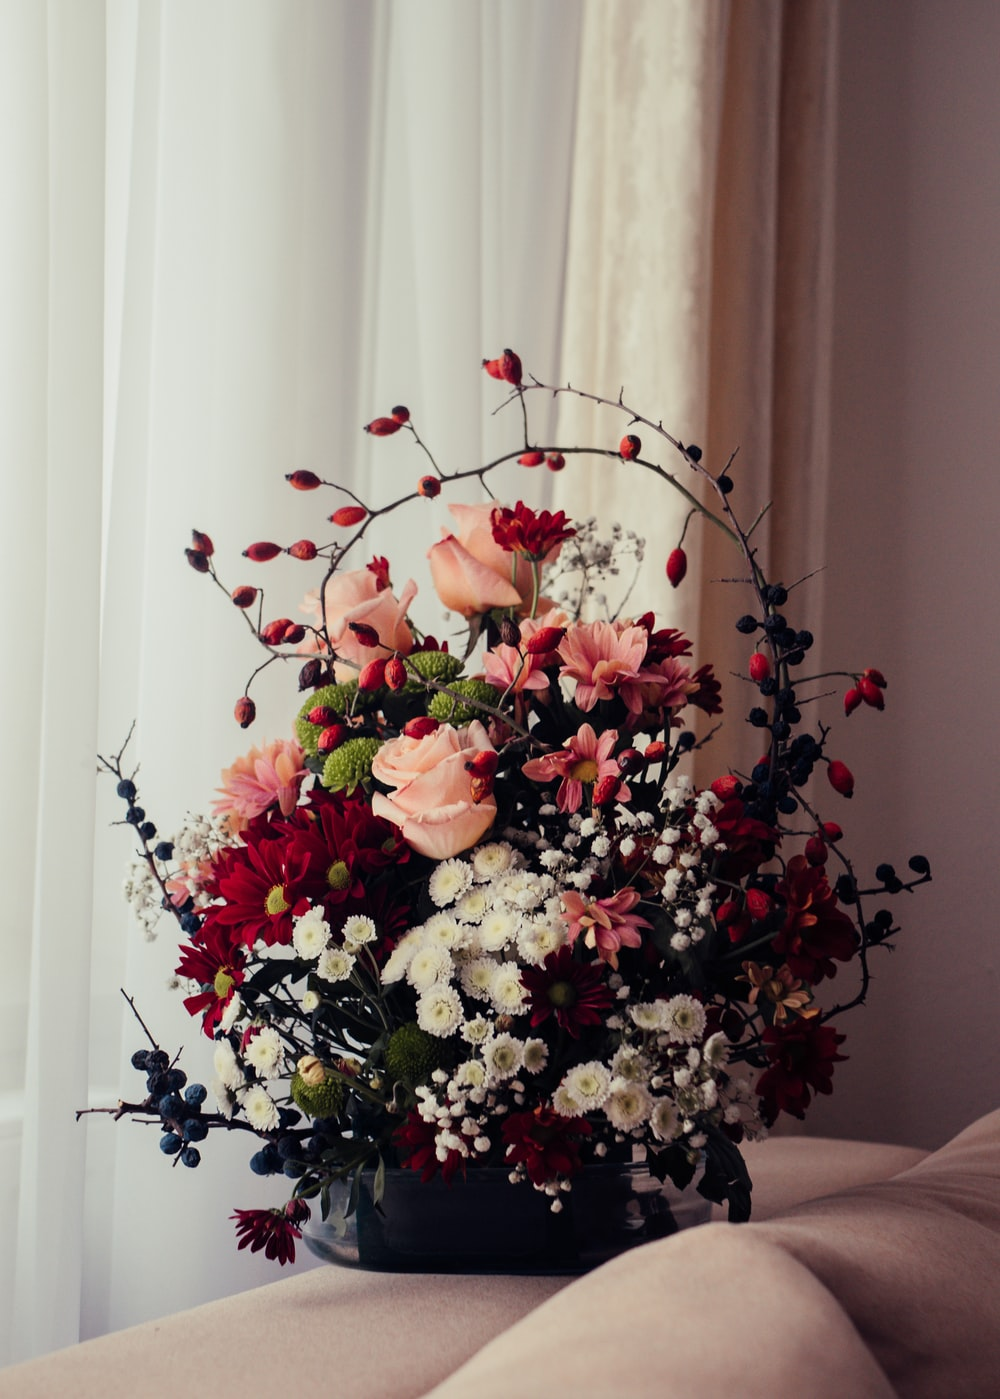 red and white flowers on vase